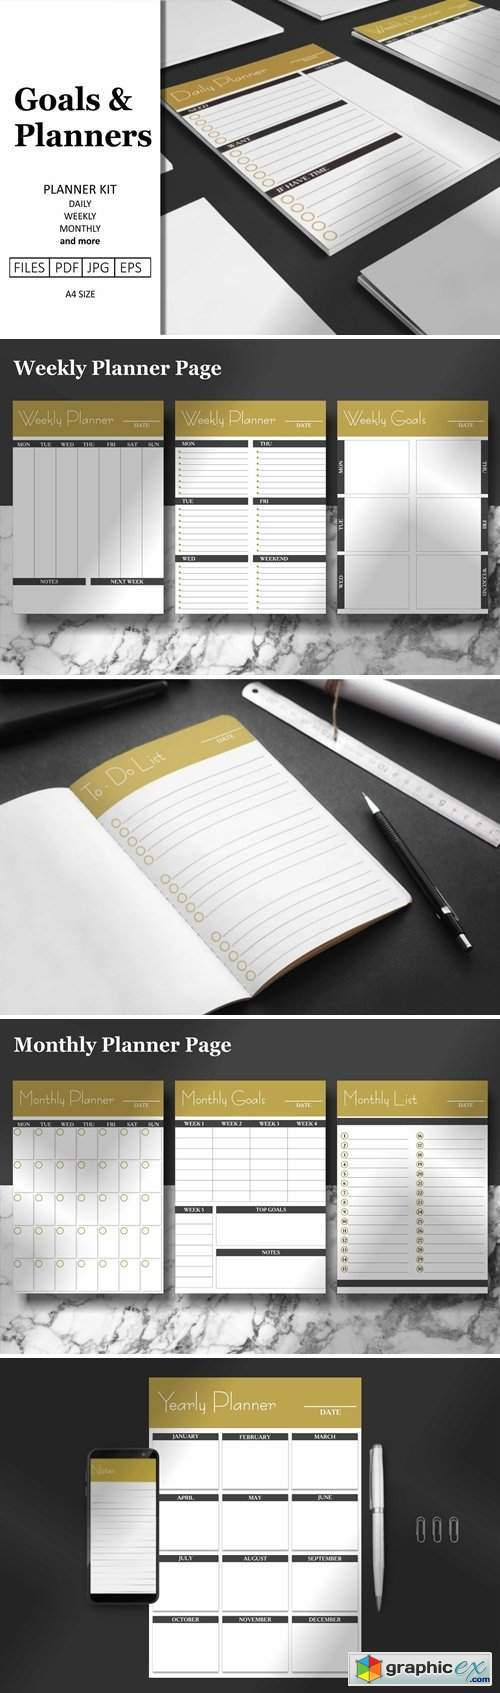 Daily & Weekly Planner